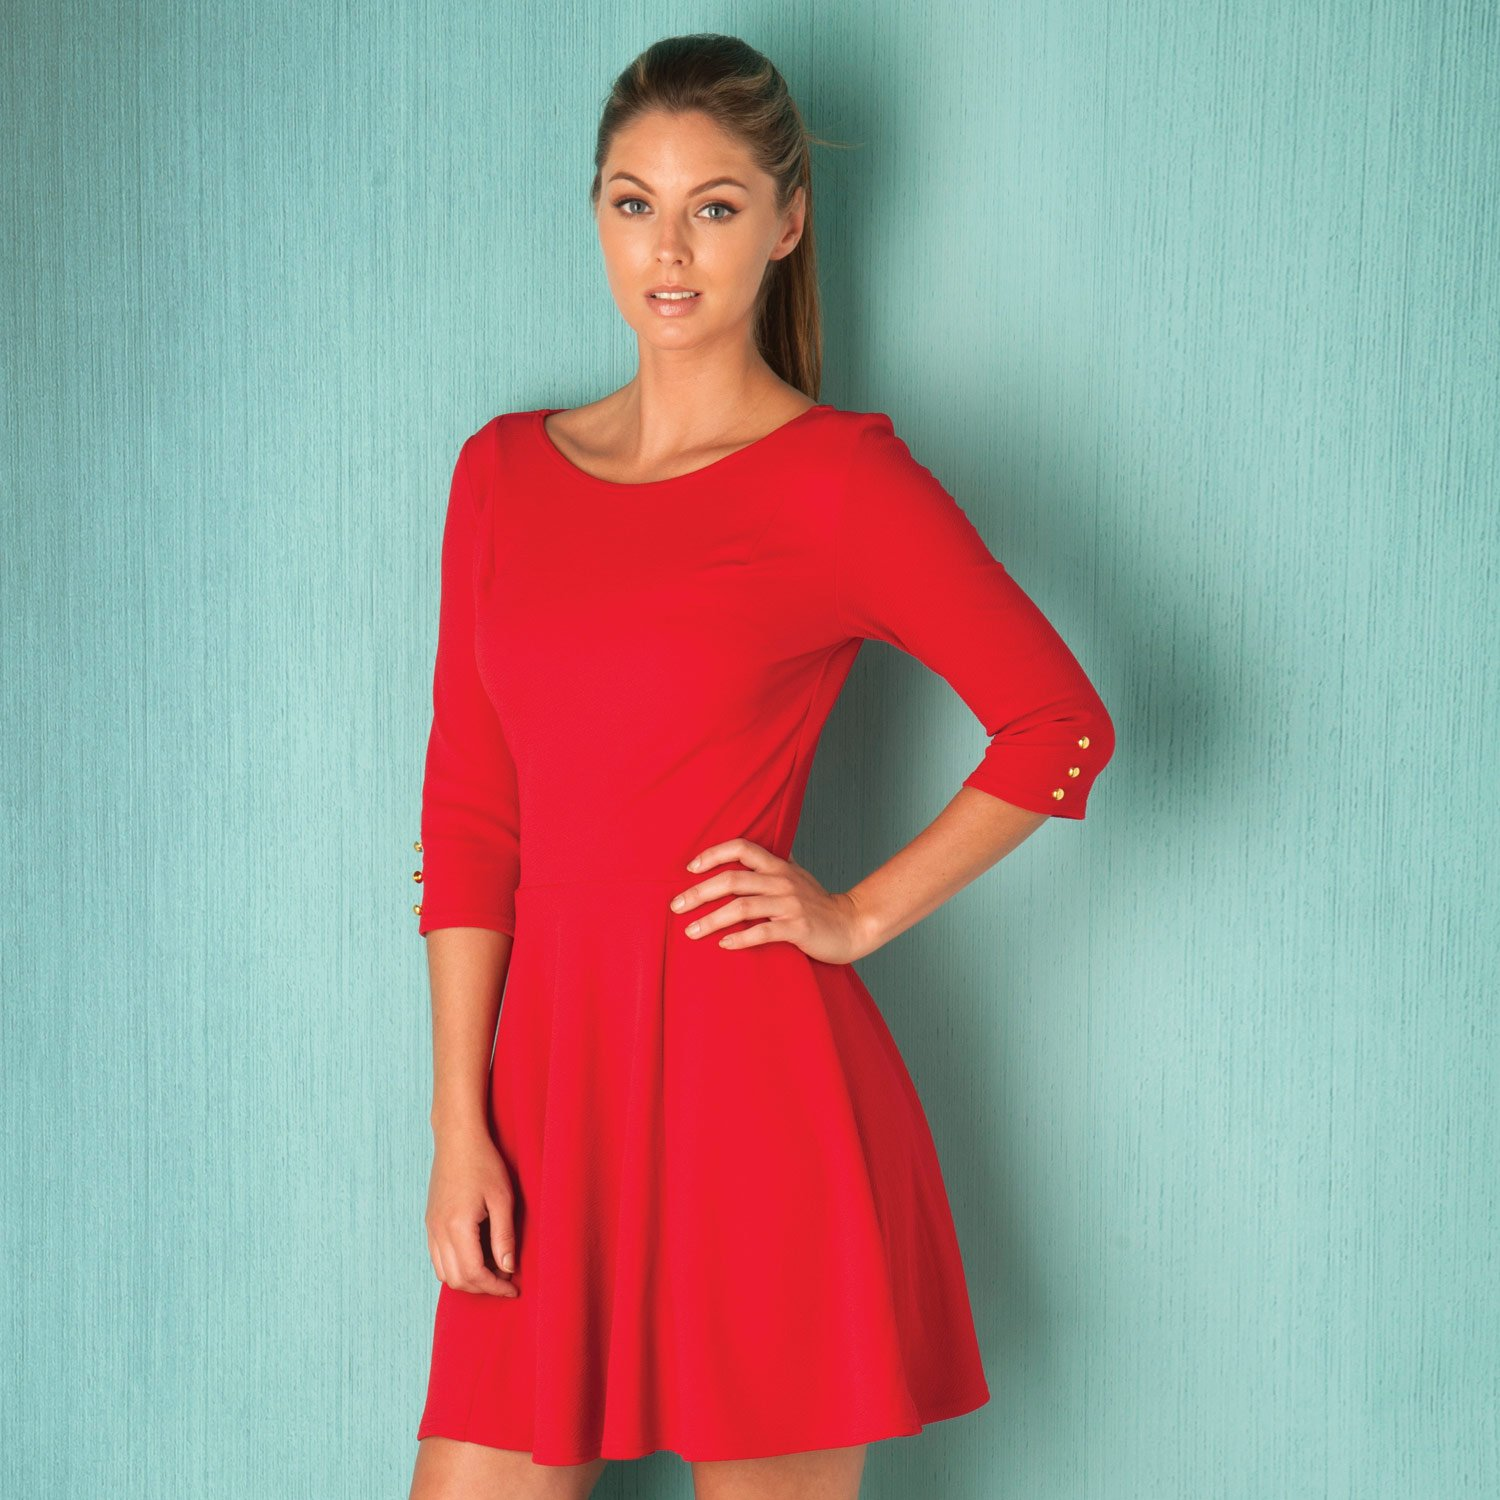 Amazon.com: Clubl Women\'s Crepe 4 Sleeve Dress 8 Red: ClubL: Clothing